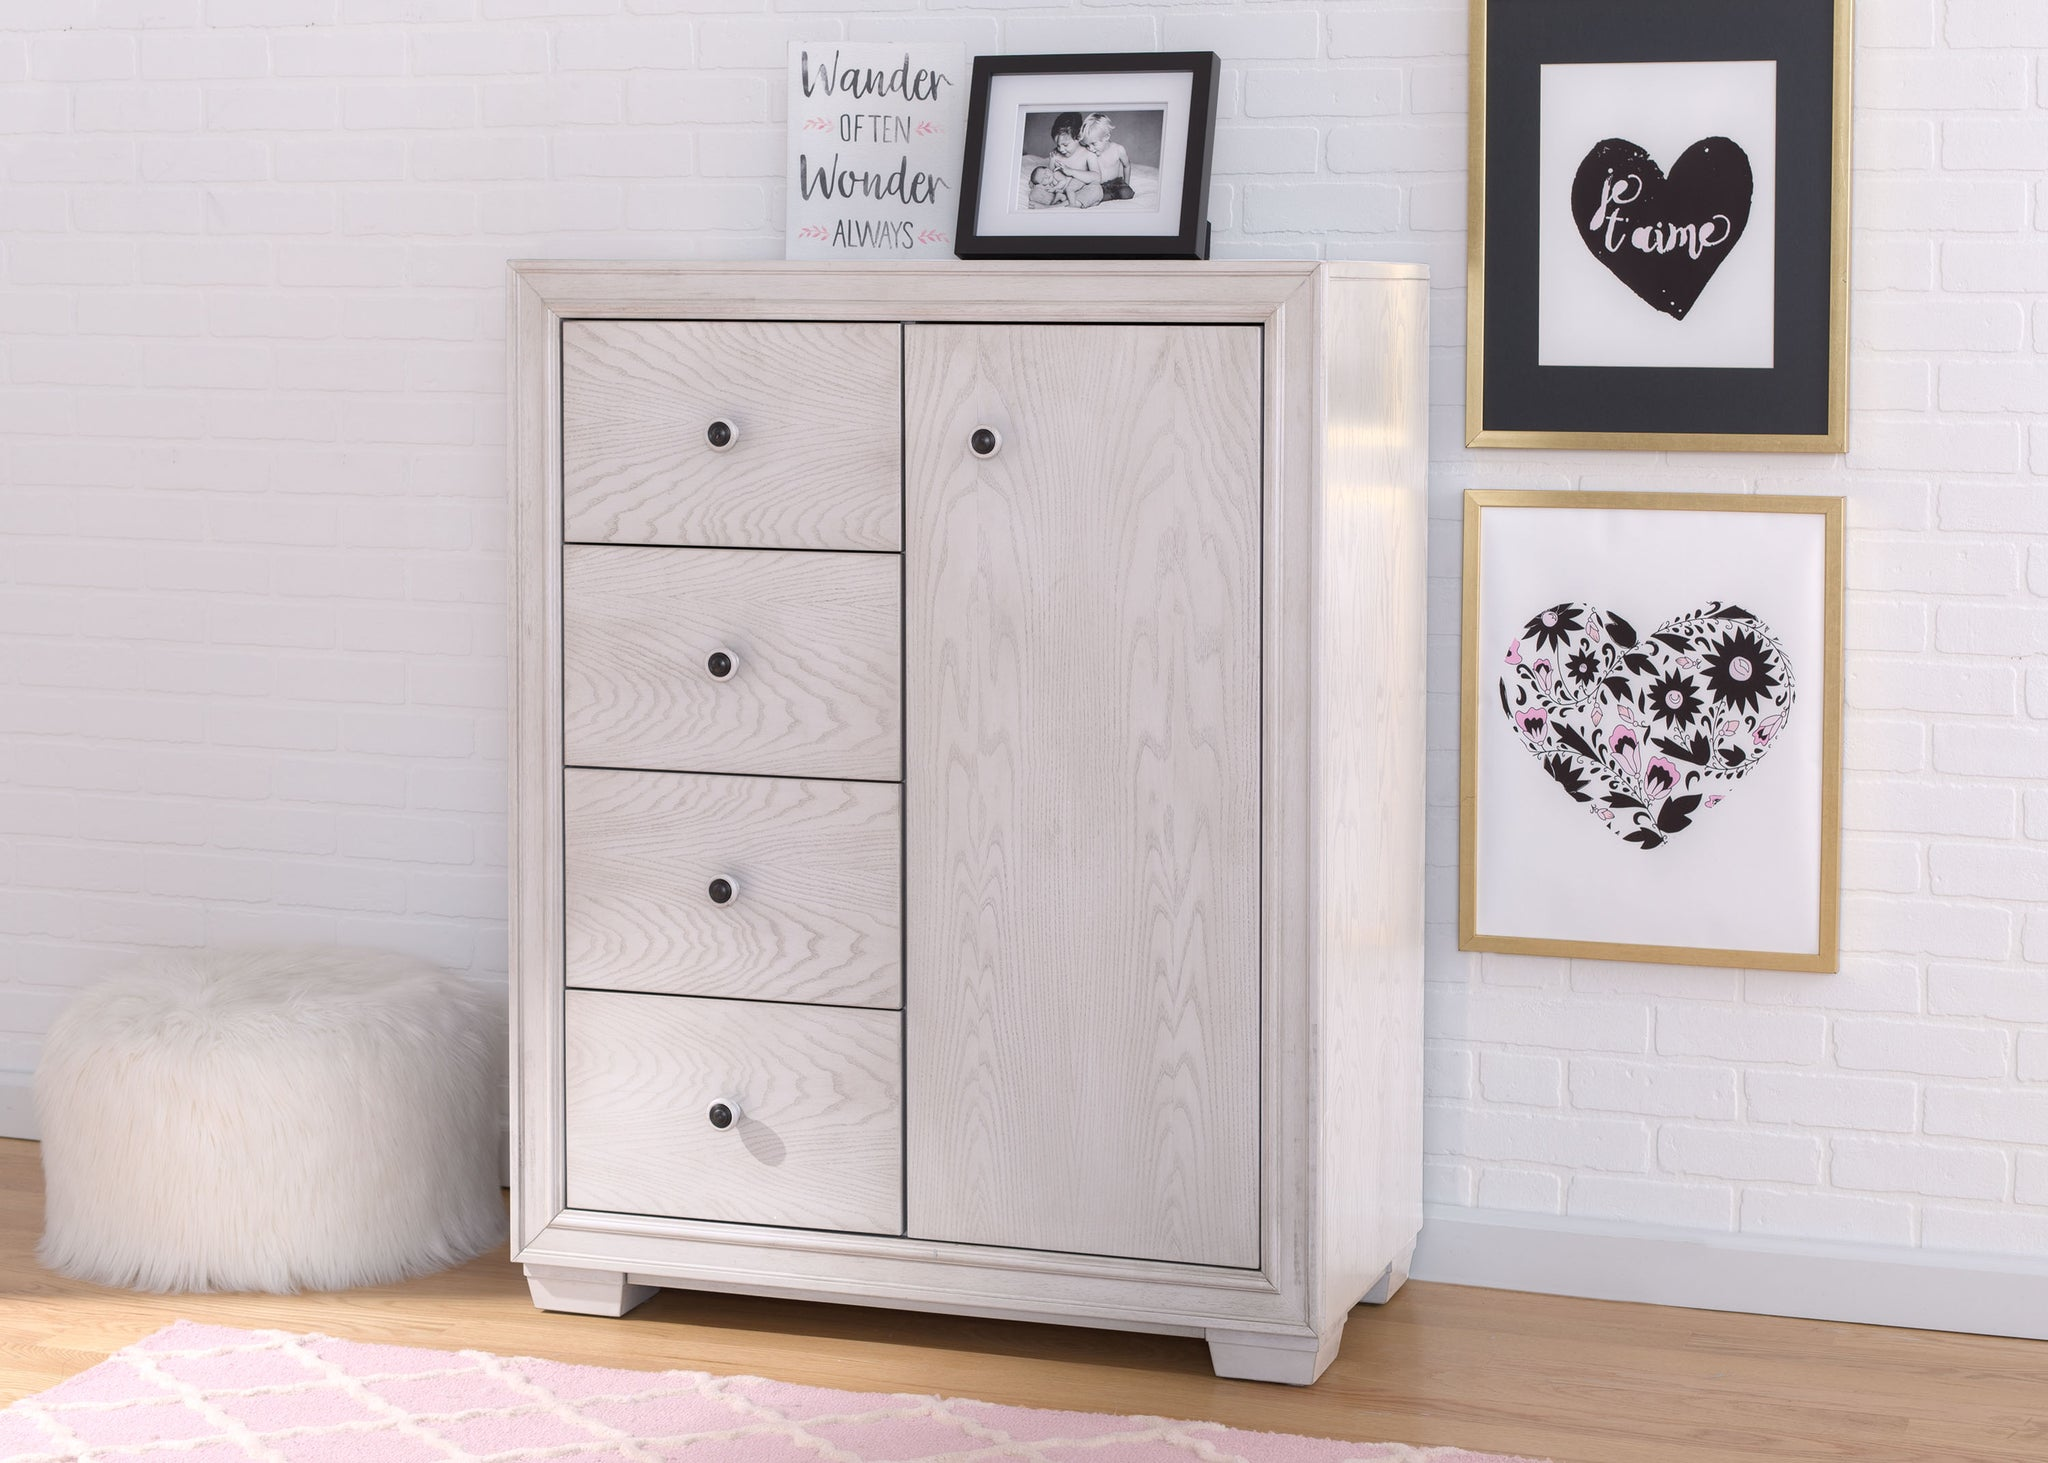 Simmons Kids Antique White (122)Ravello 4 Drawer Combo Chest, Hangtag View, a1a